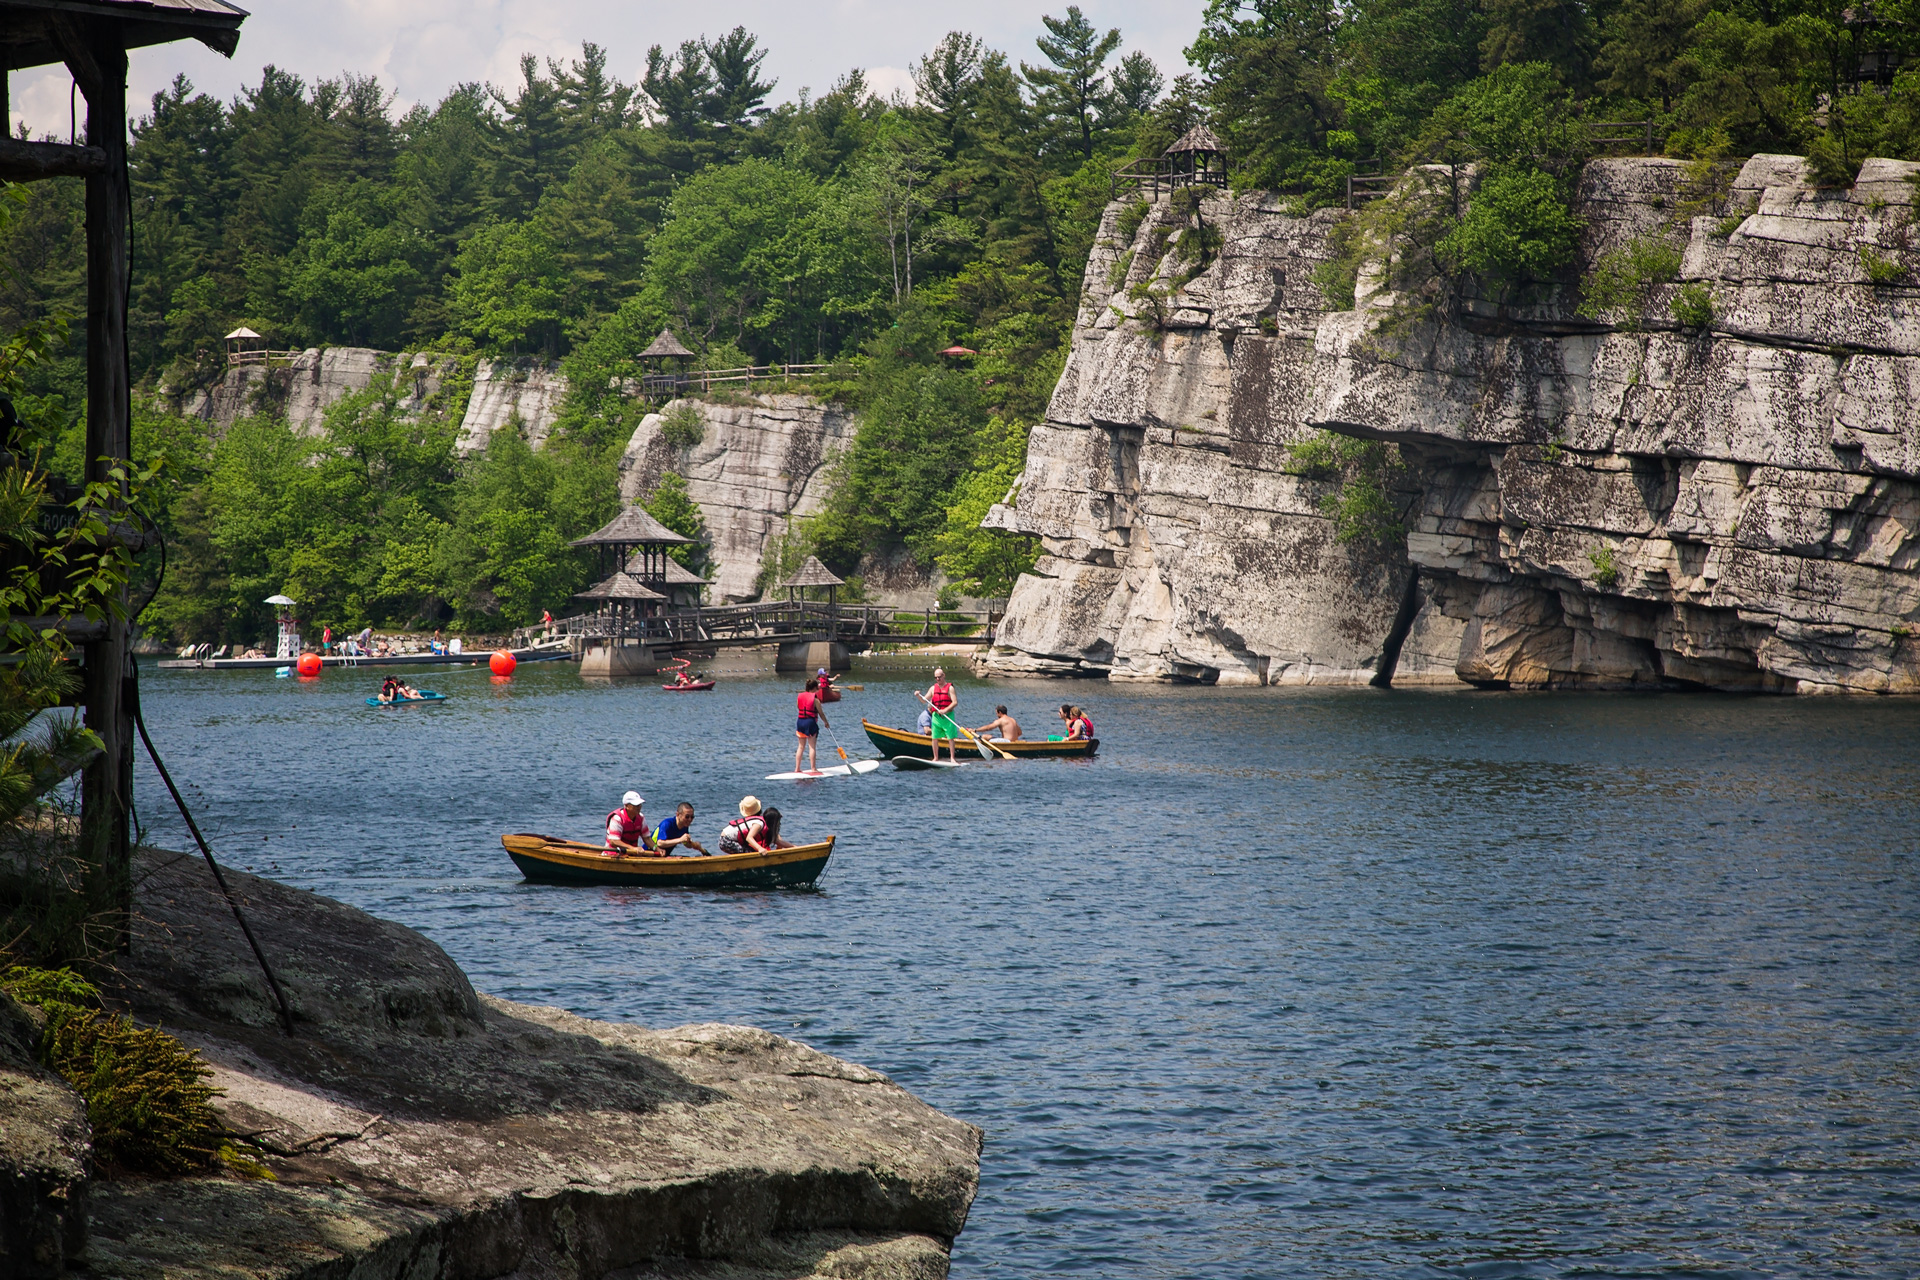 Water sports at the Mohonk Mountain House